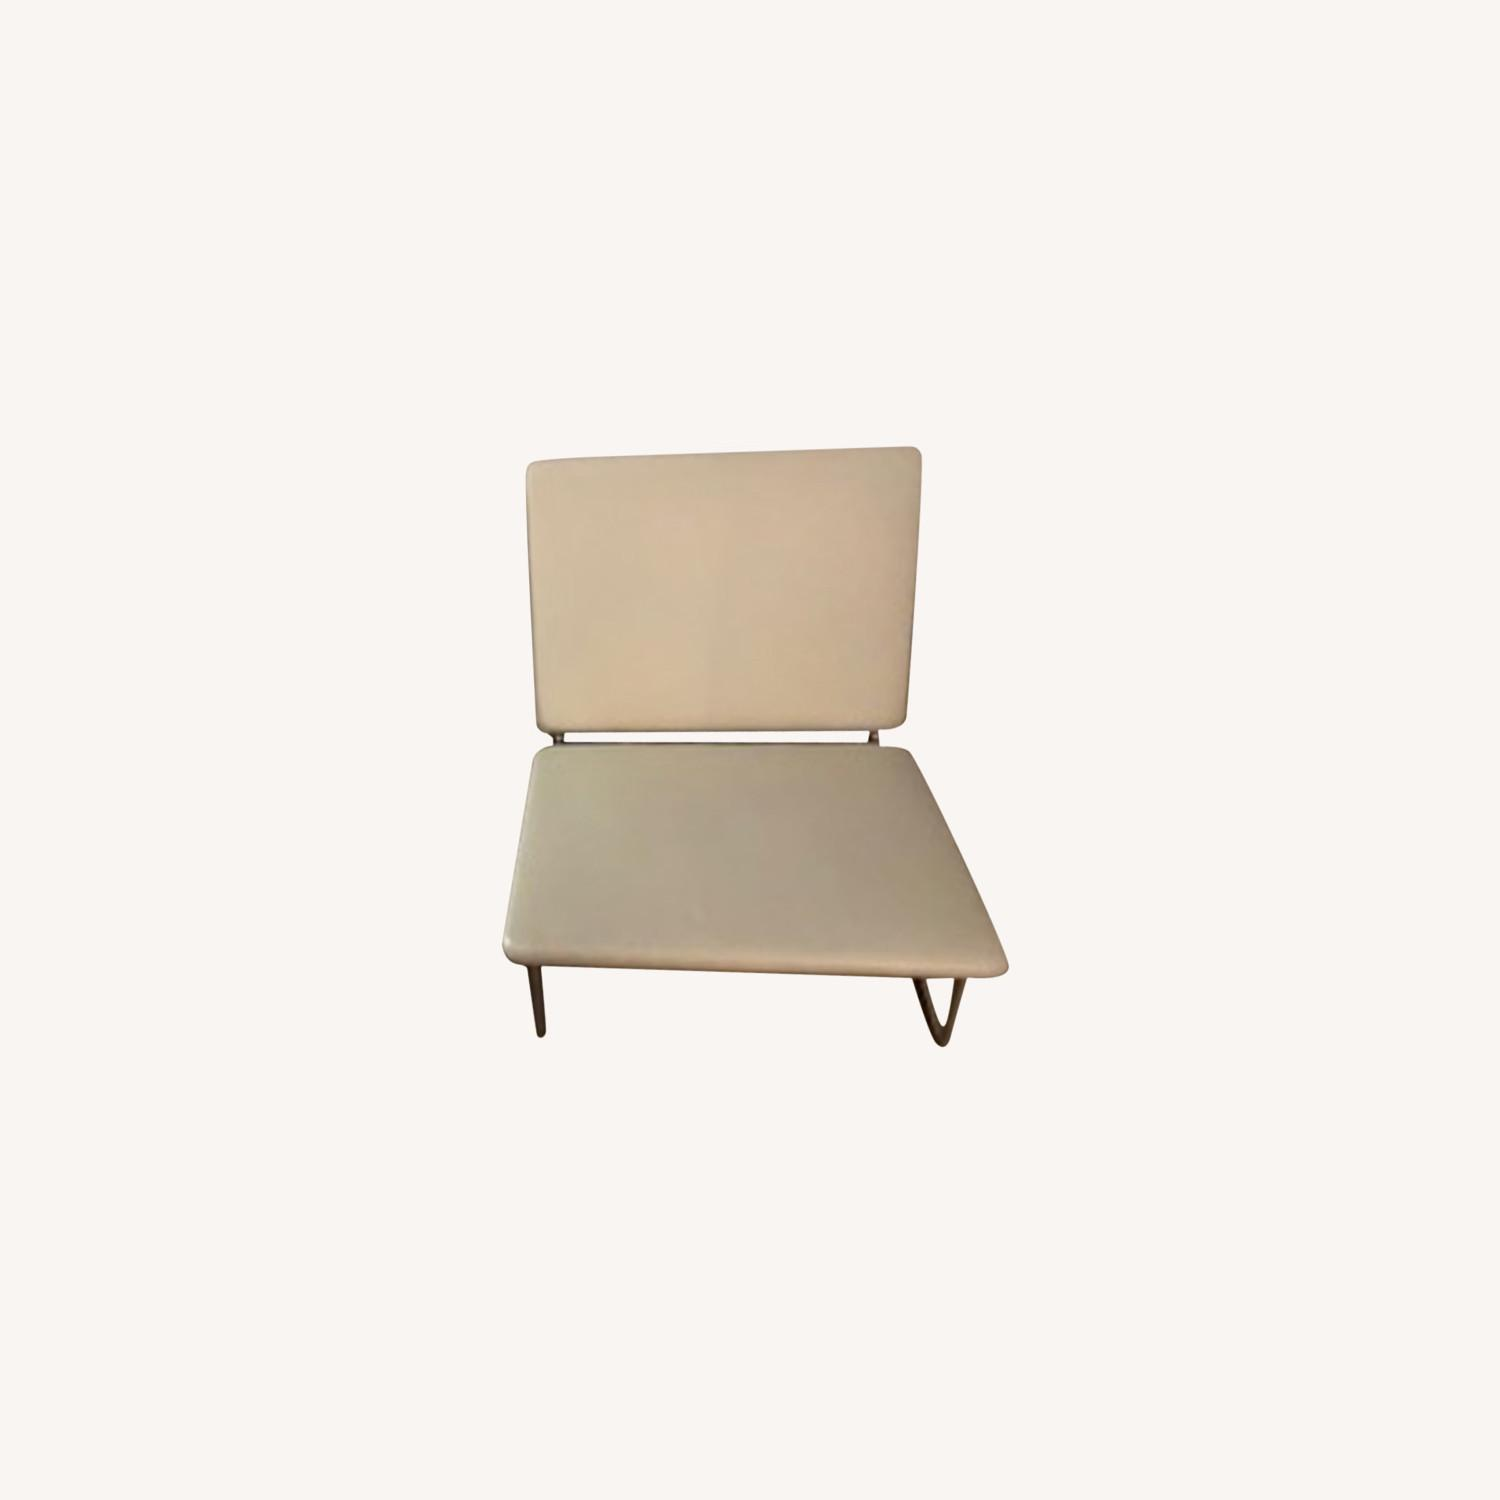 Midcentury Modern White Leather Lounge Chairs - image-0